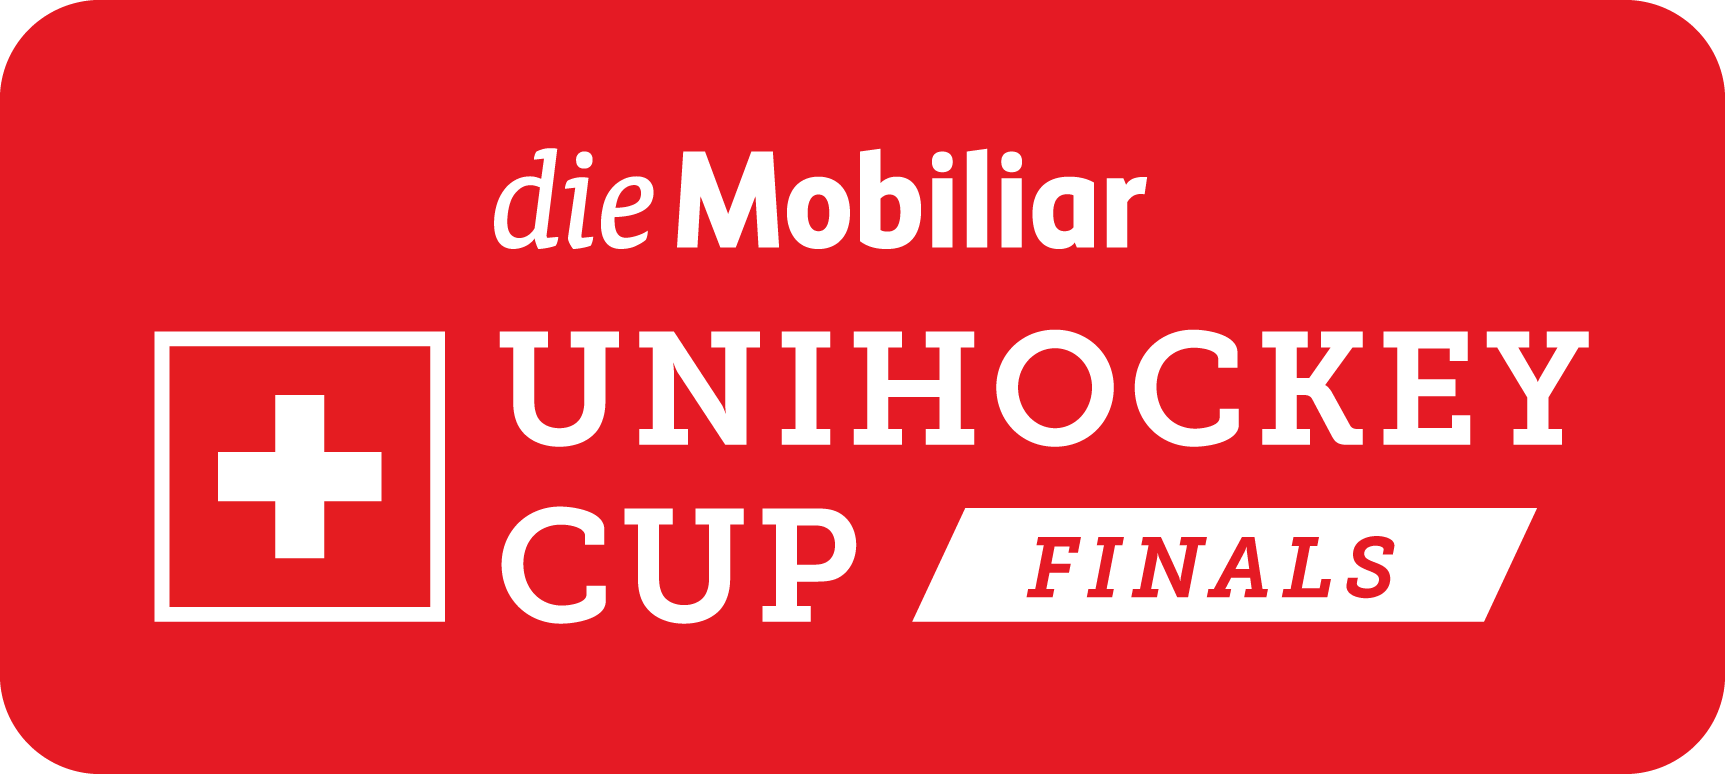 SUH-CUP-Final-cmyk-rot.png